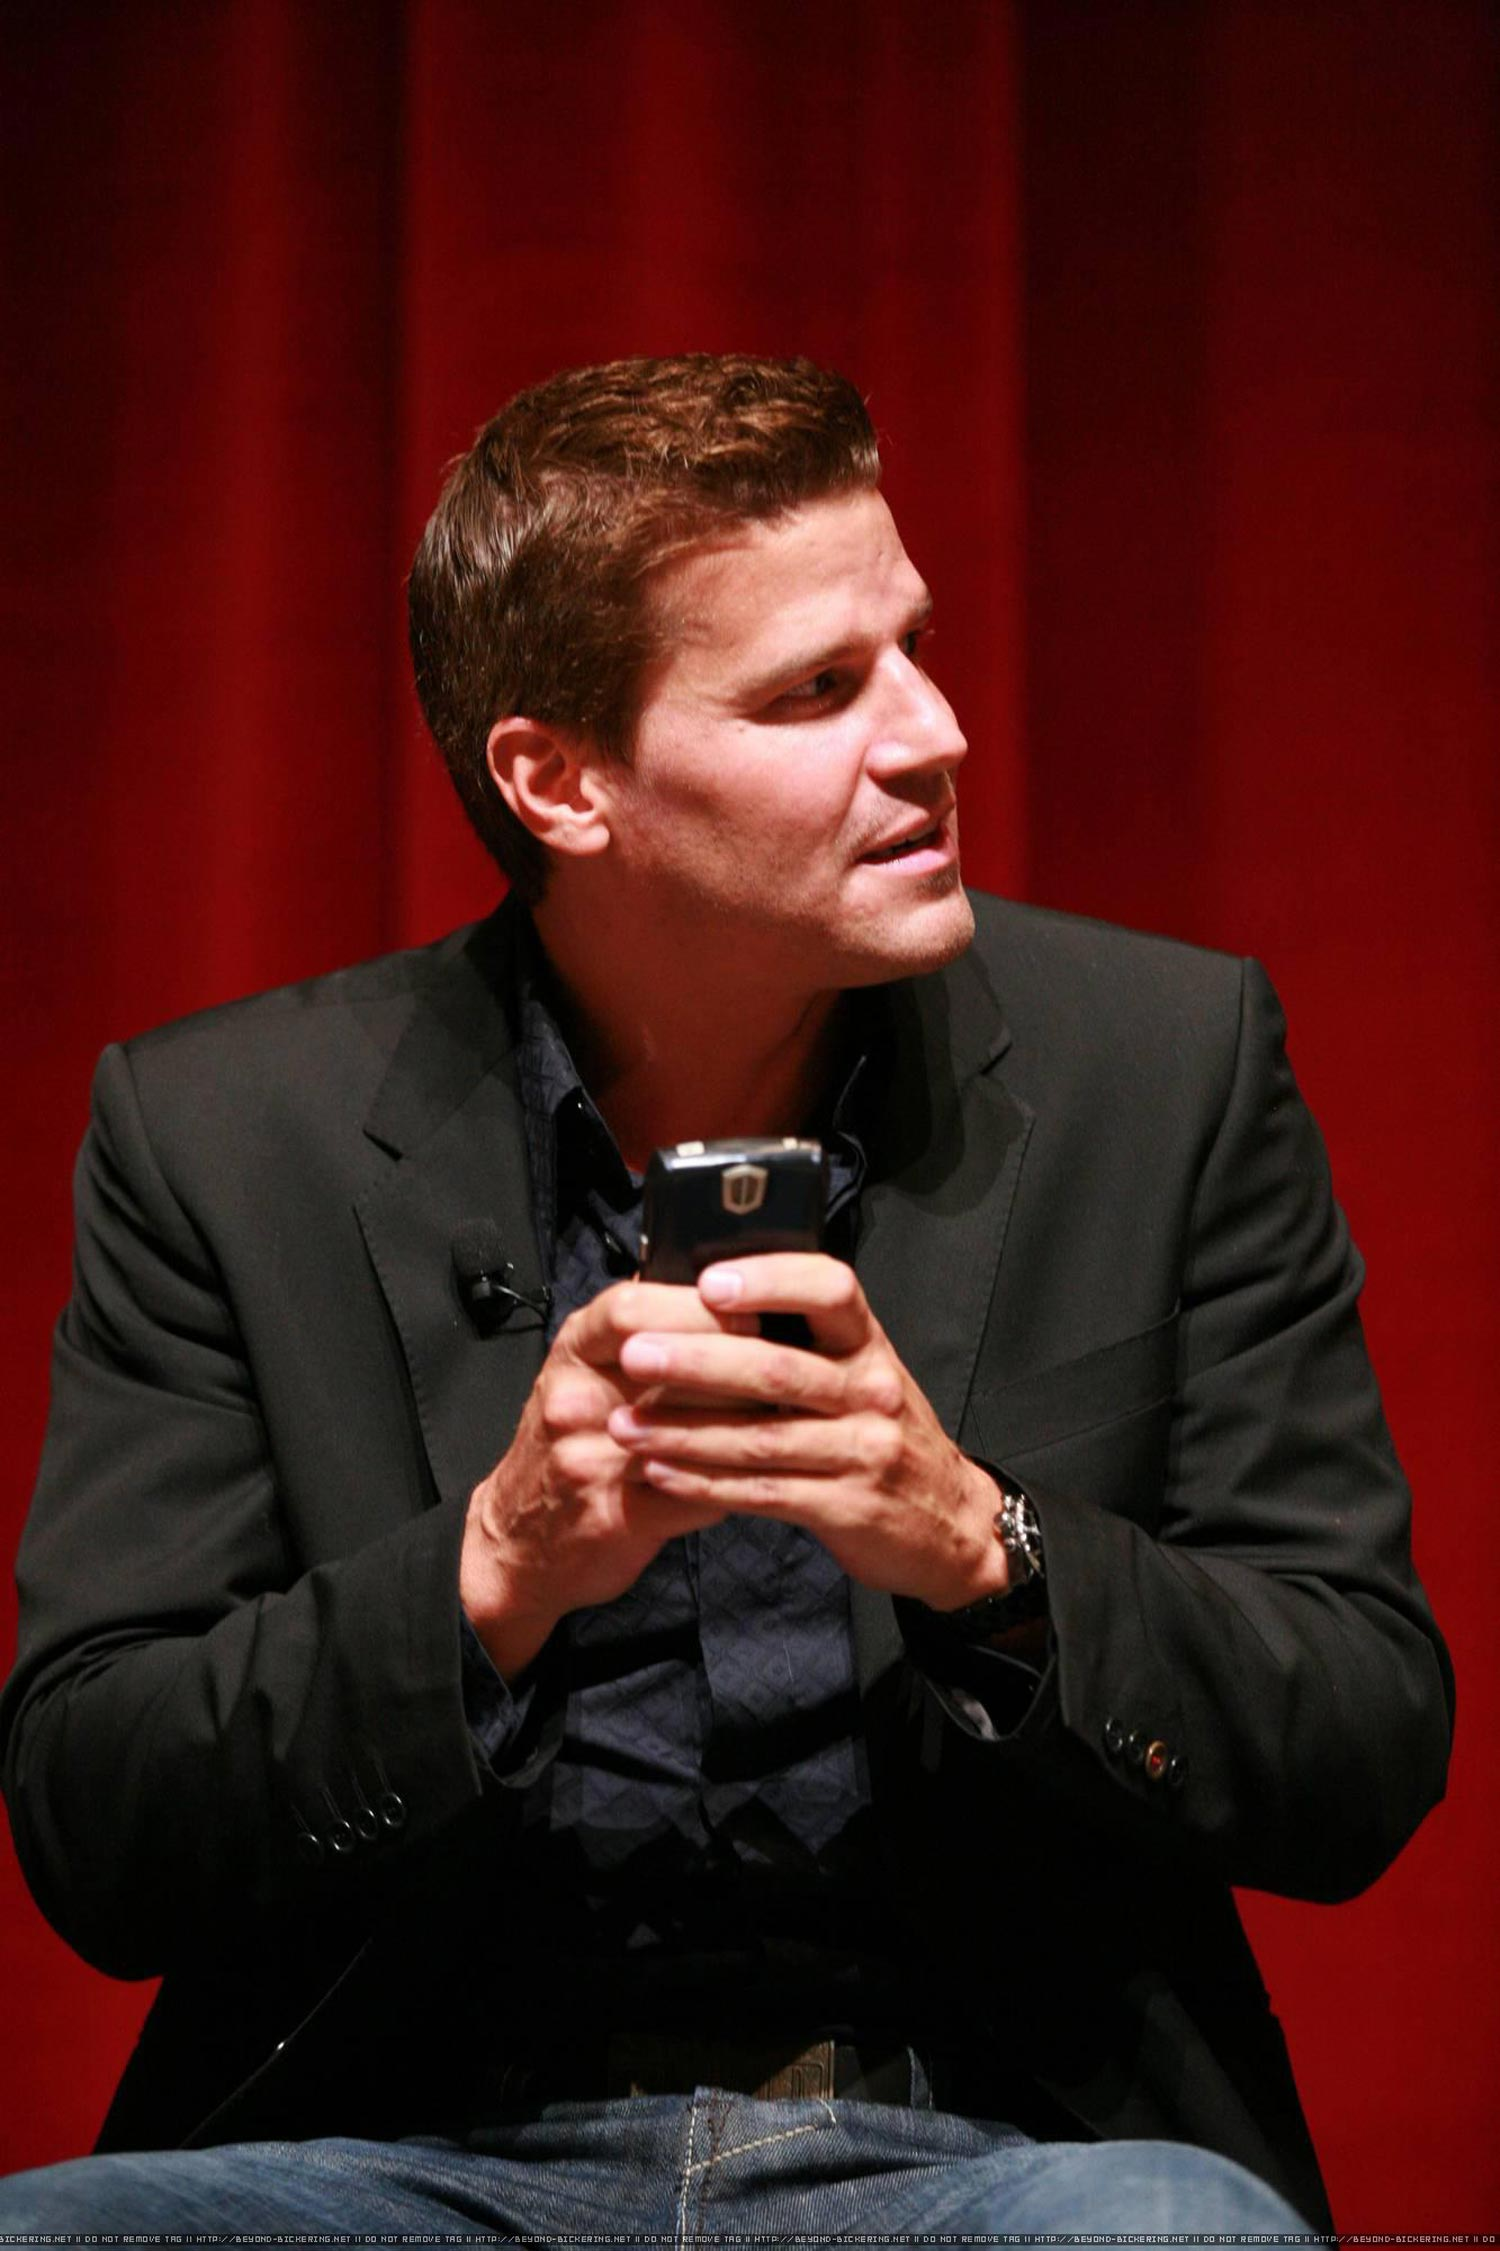 IMG/jpg/david-boreanaz-bones-tv-series-may-2007-panel-discussion-hq-35-1500. (...)